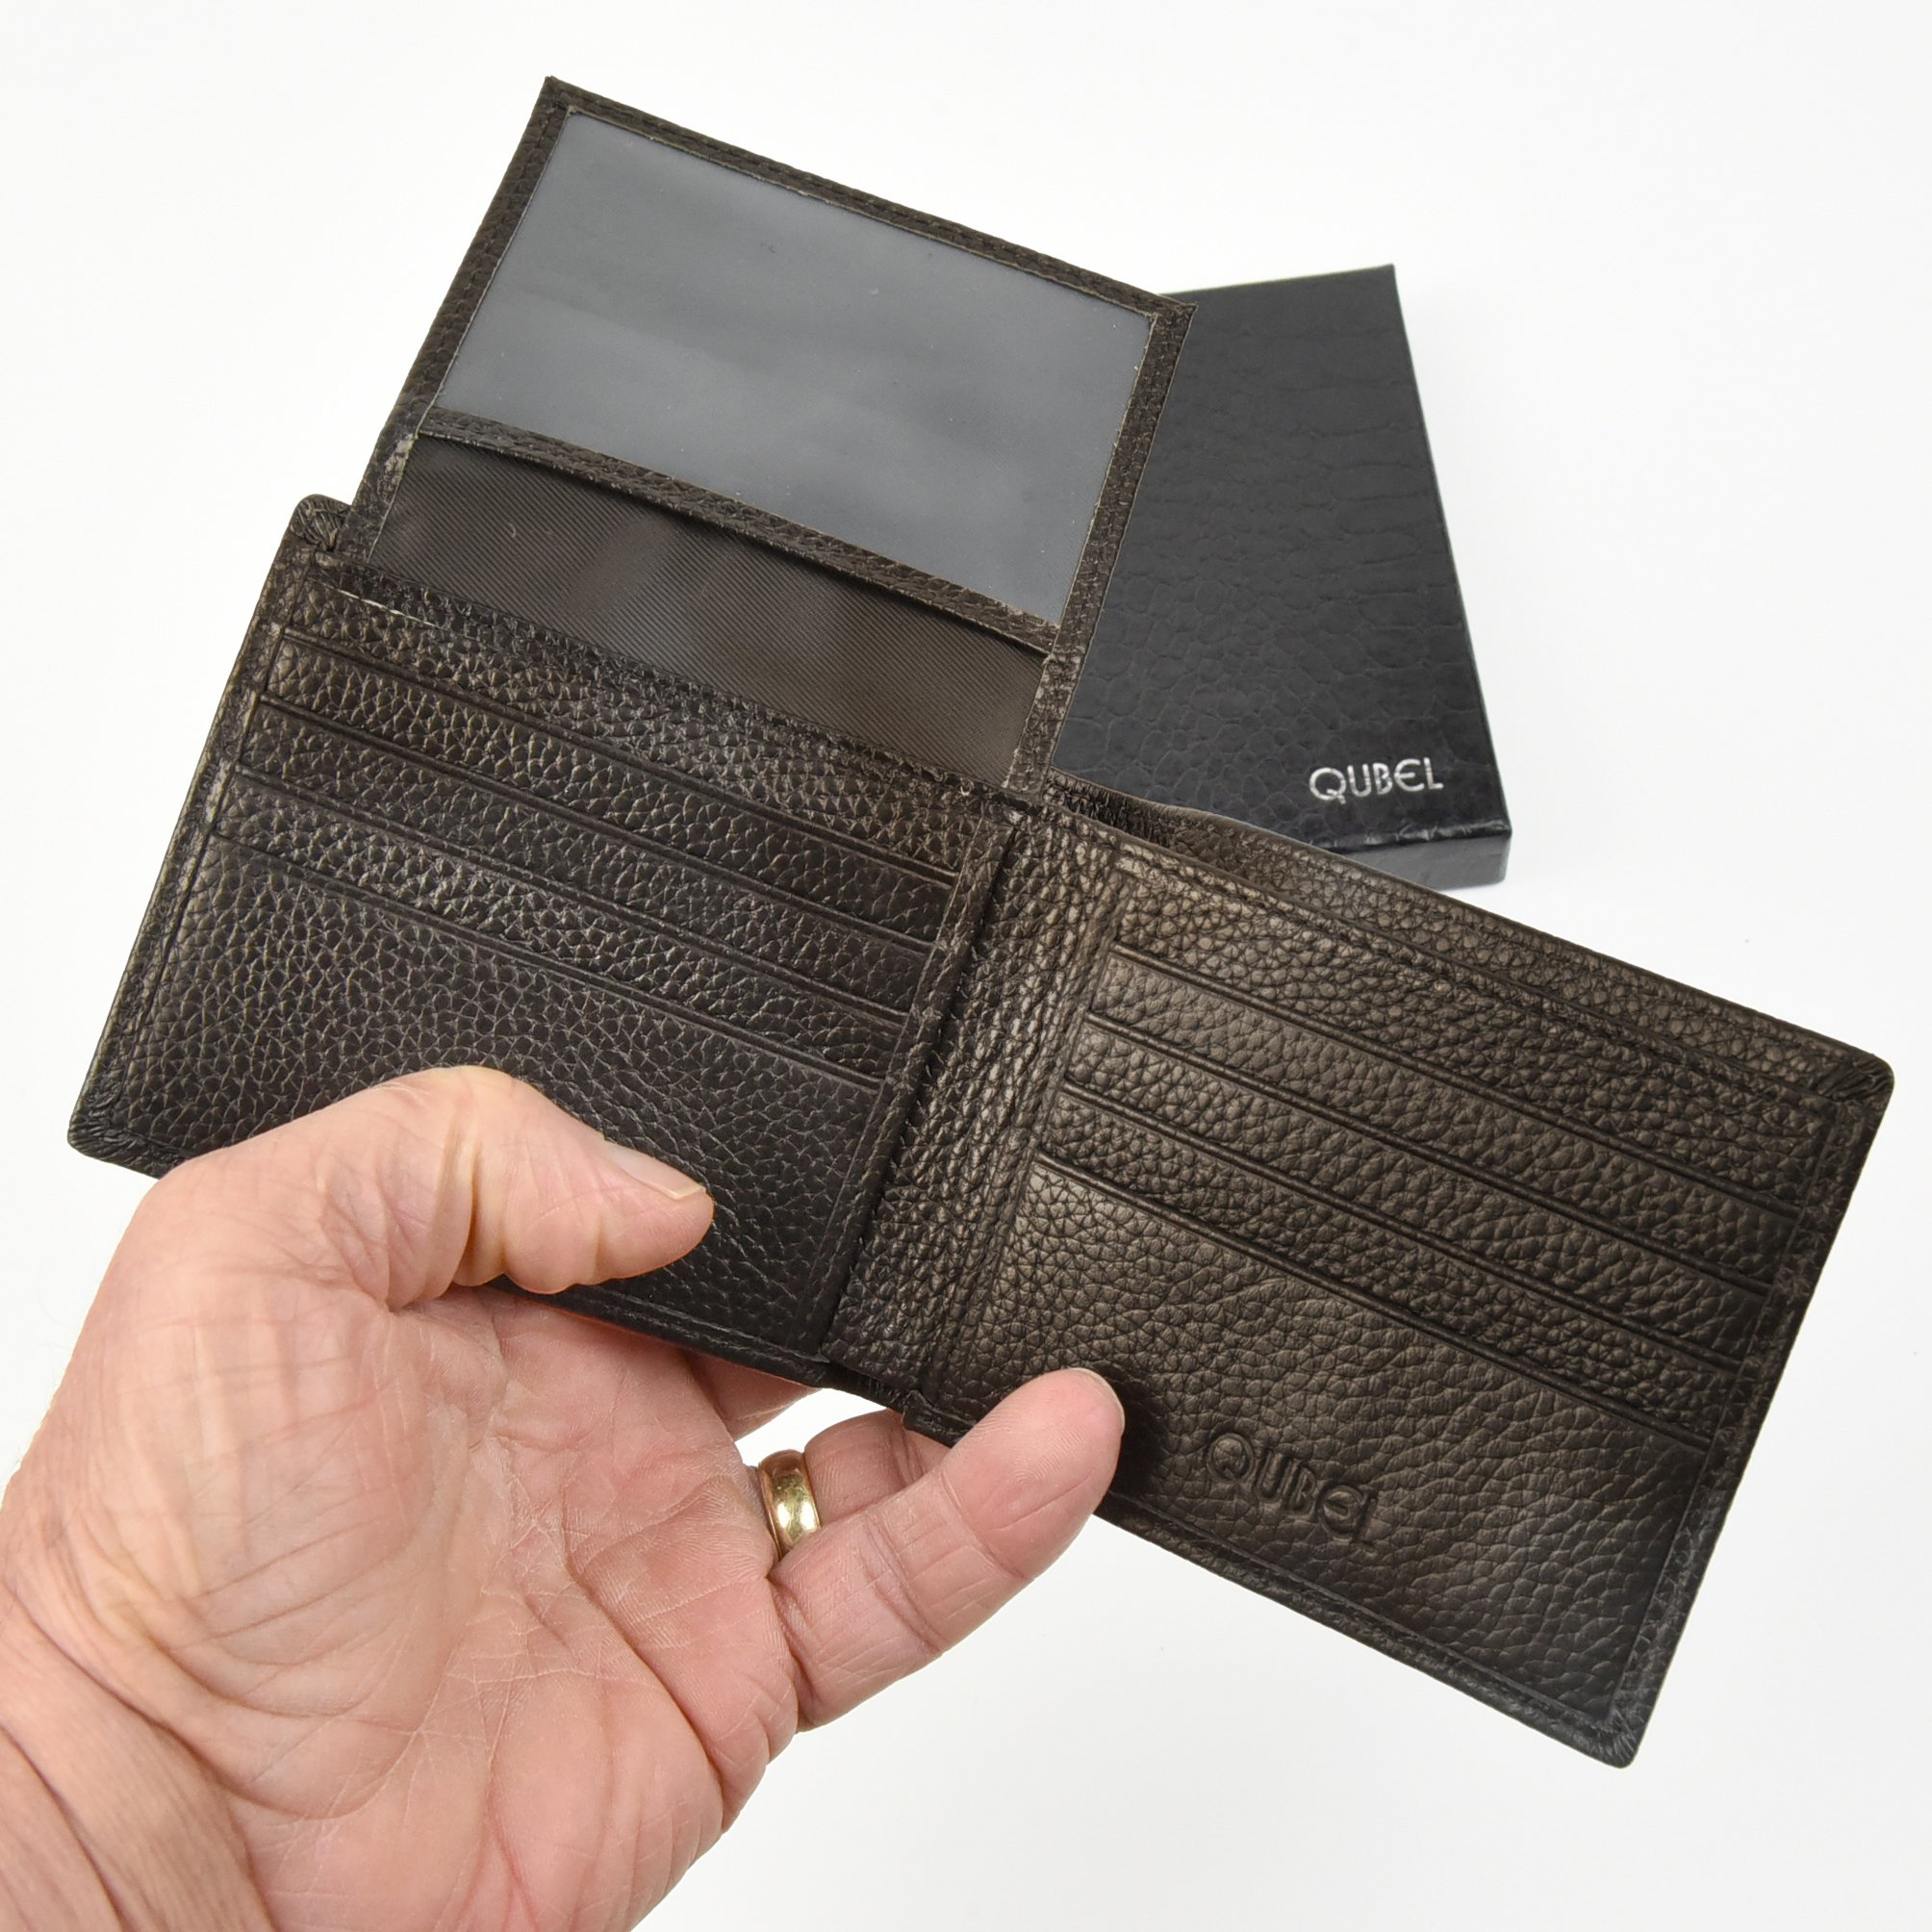 RFID Blocking Slim Bifold Genuine Leather Wallet for Men - Credit Card Protector by Qubel (Image #6)